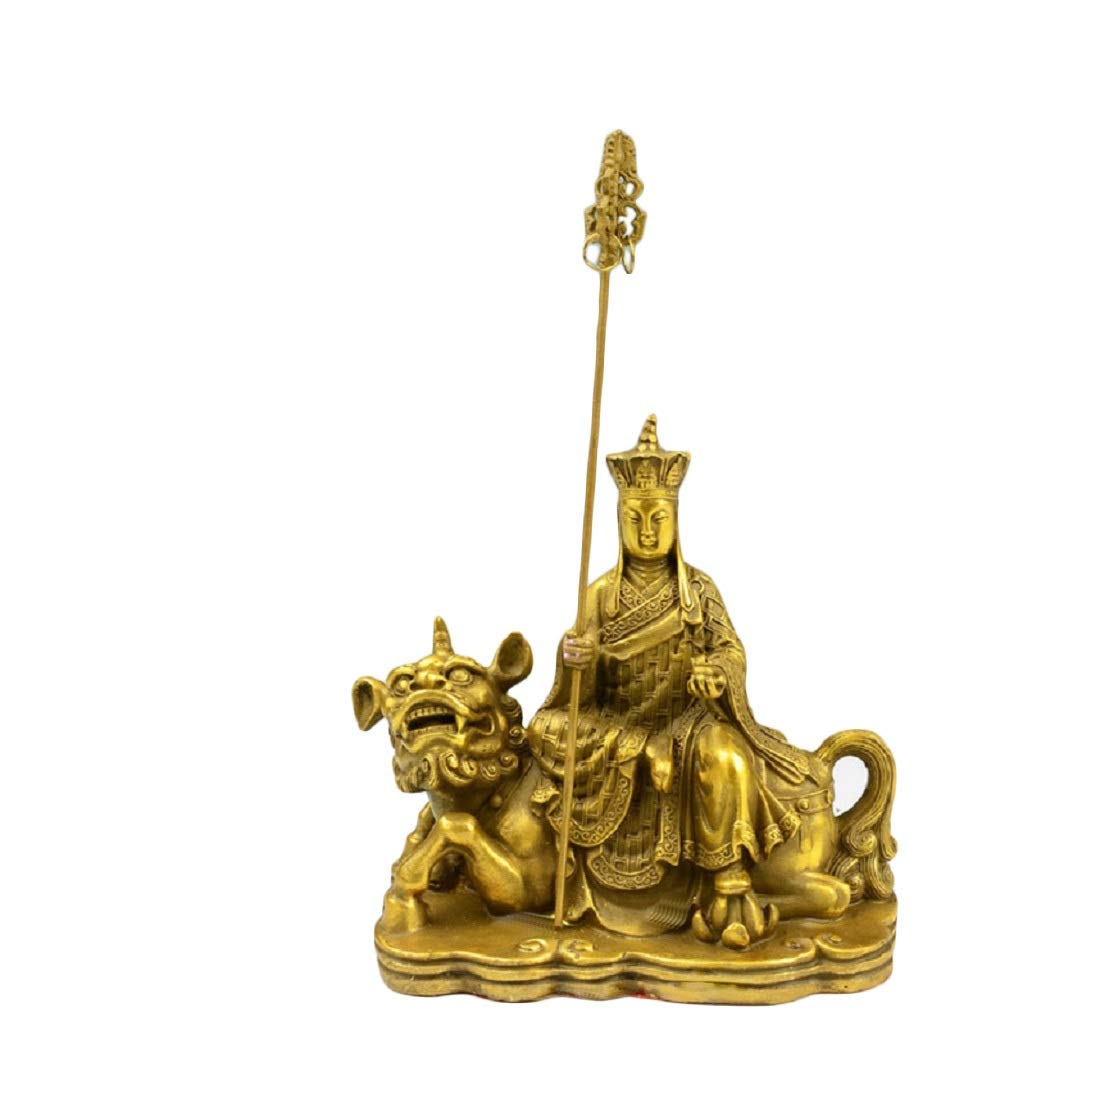 Fengshui Products Buddha Statues Decor for Home, Handmade Brass Ksitigarbha on The Unicorn, Buddhist Statues and Sculptures Desk Decorations, Happiness and Lucky Buddha Figurines (16cm Tall)